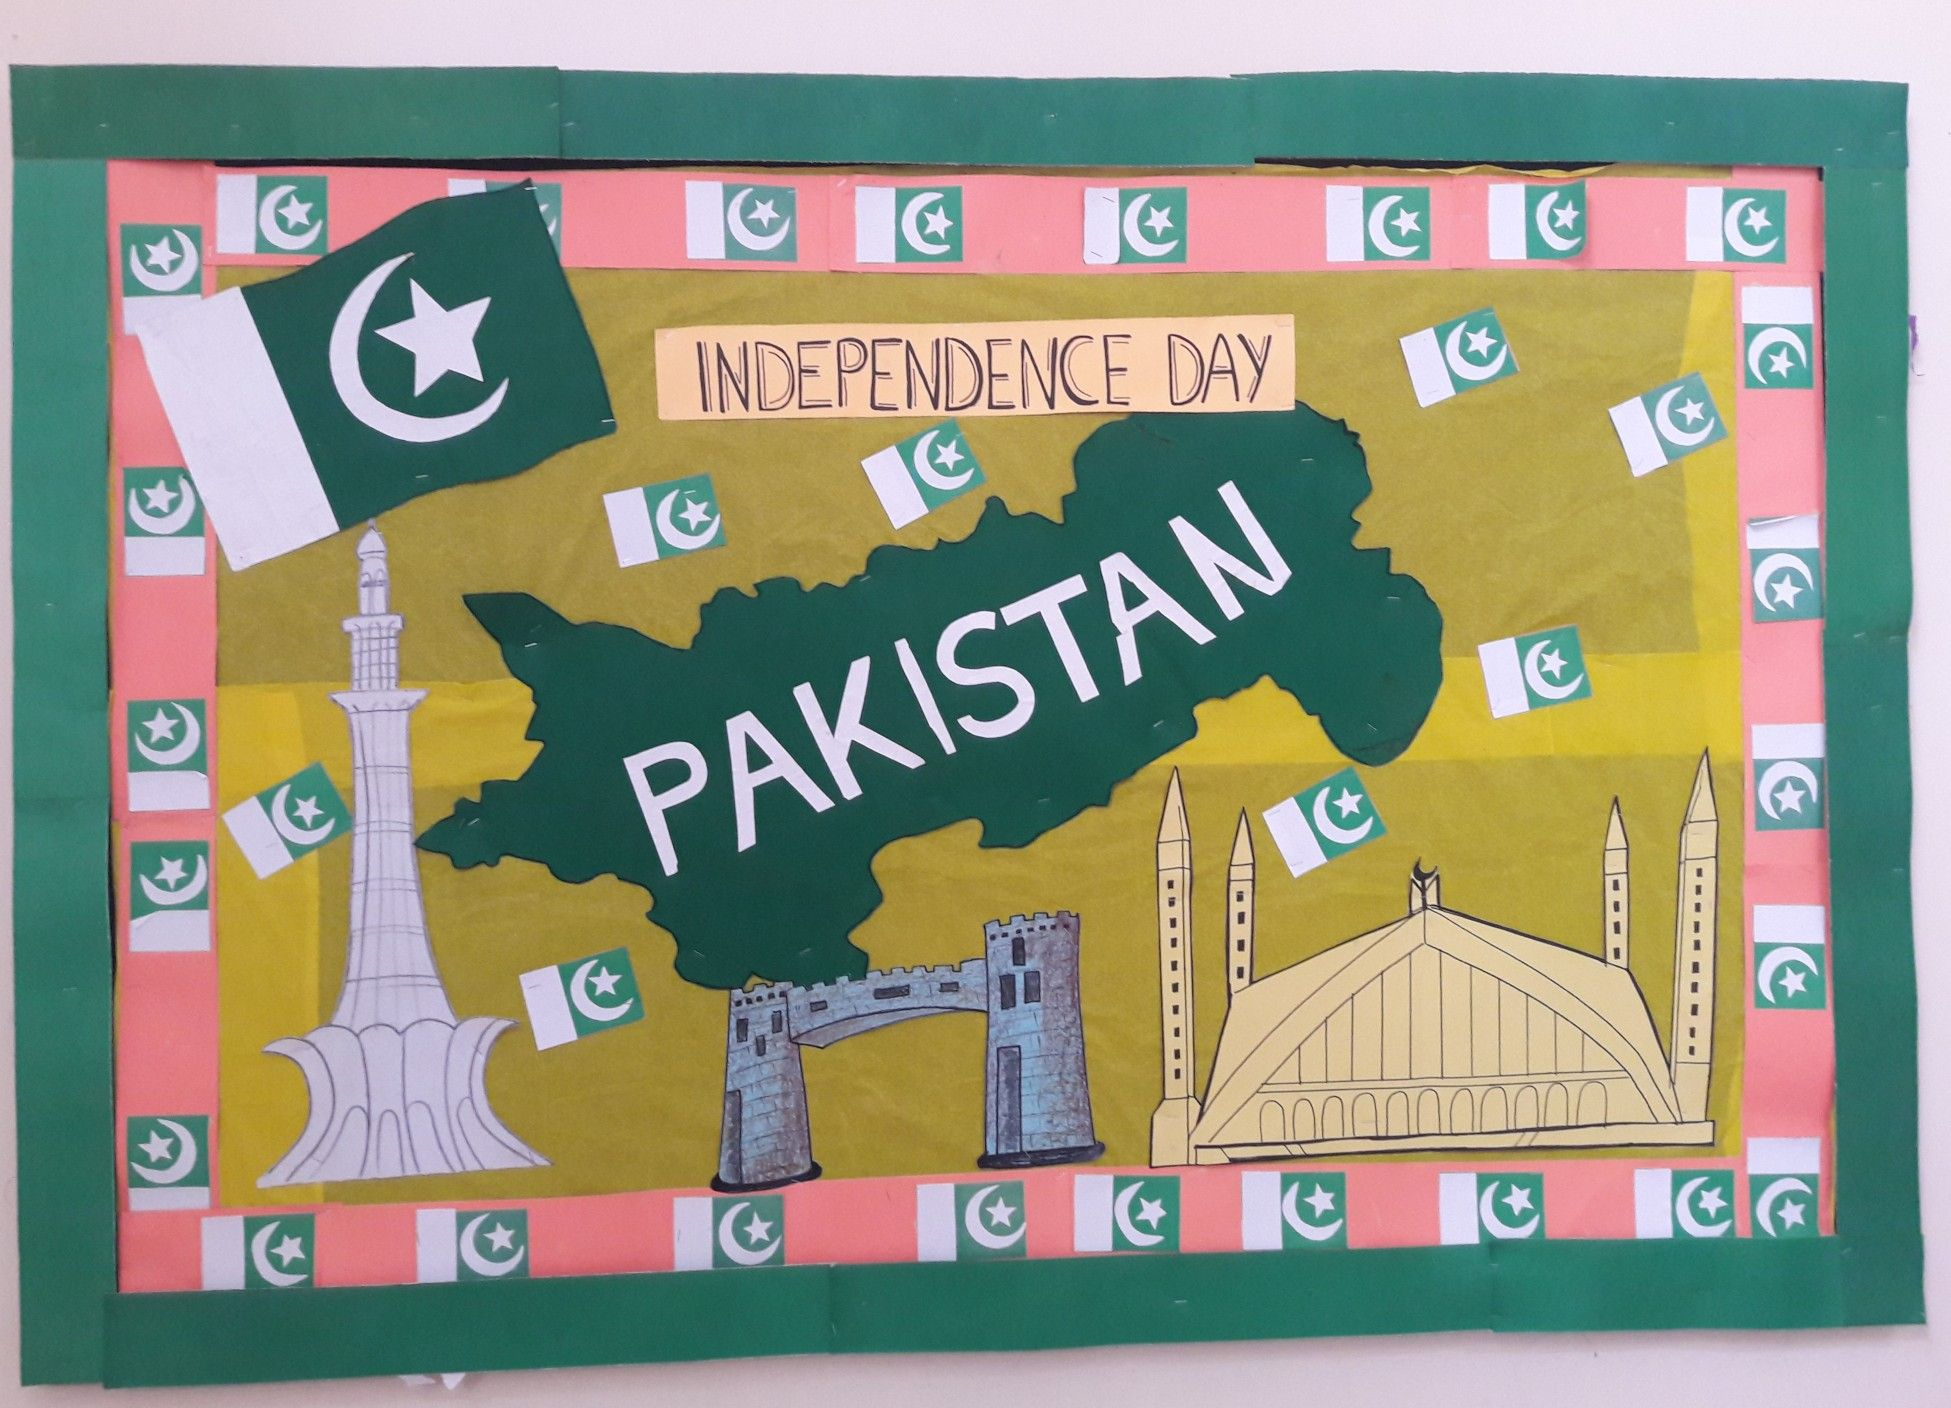 14th August Independence Day Bulliten Board By Sumera